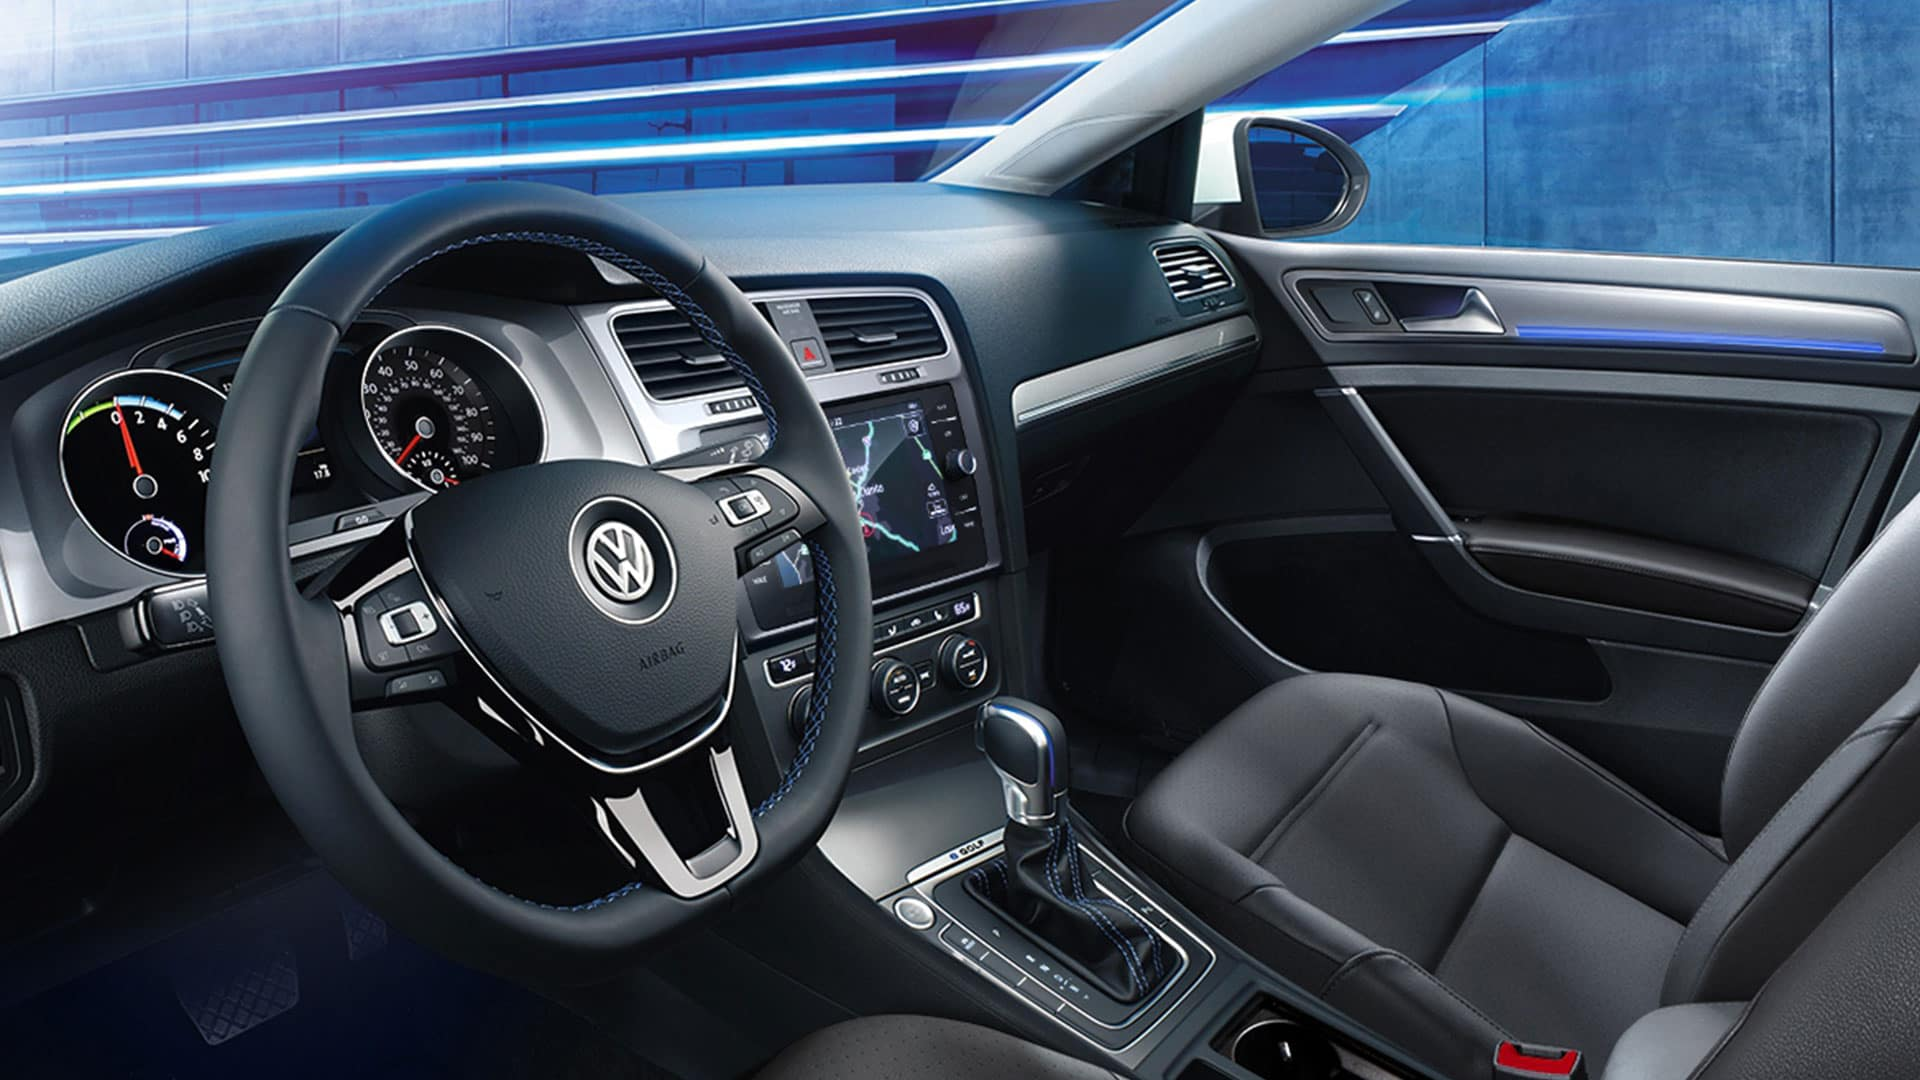 2019 VW e-Golf interior styling